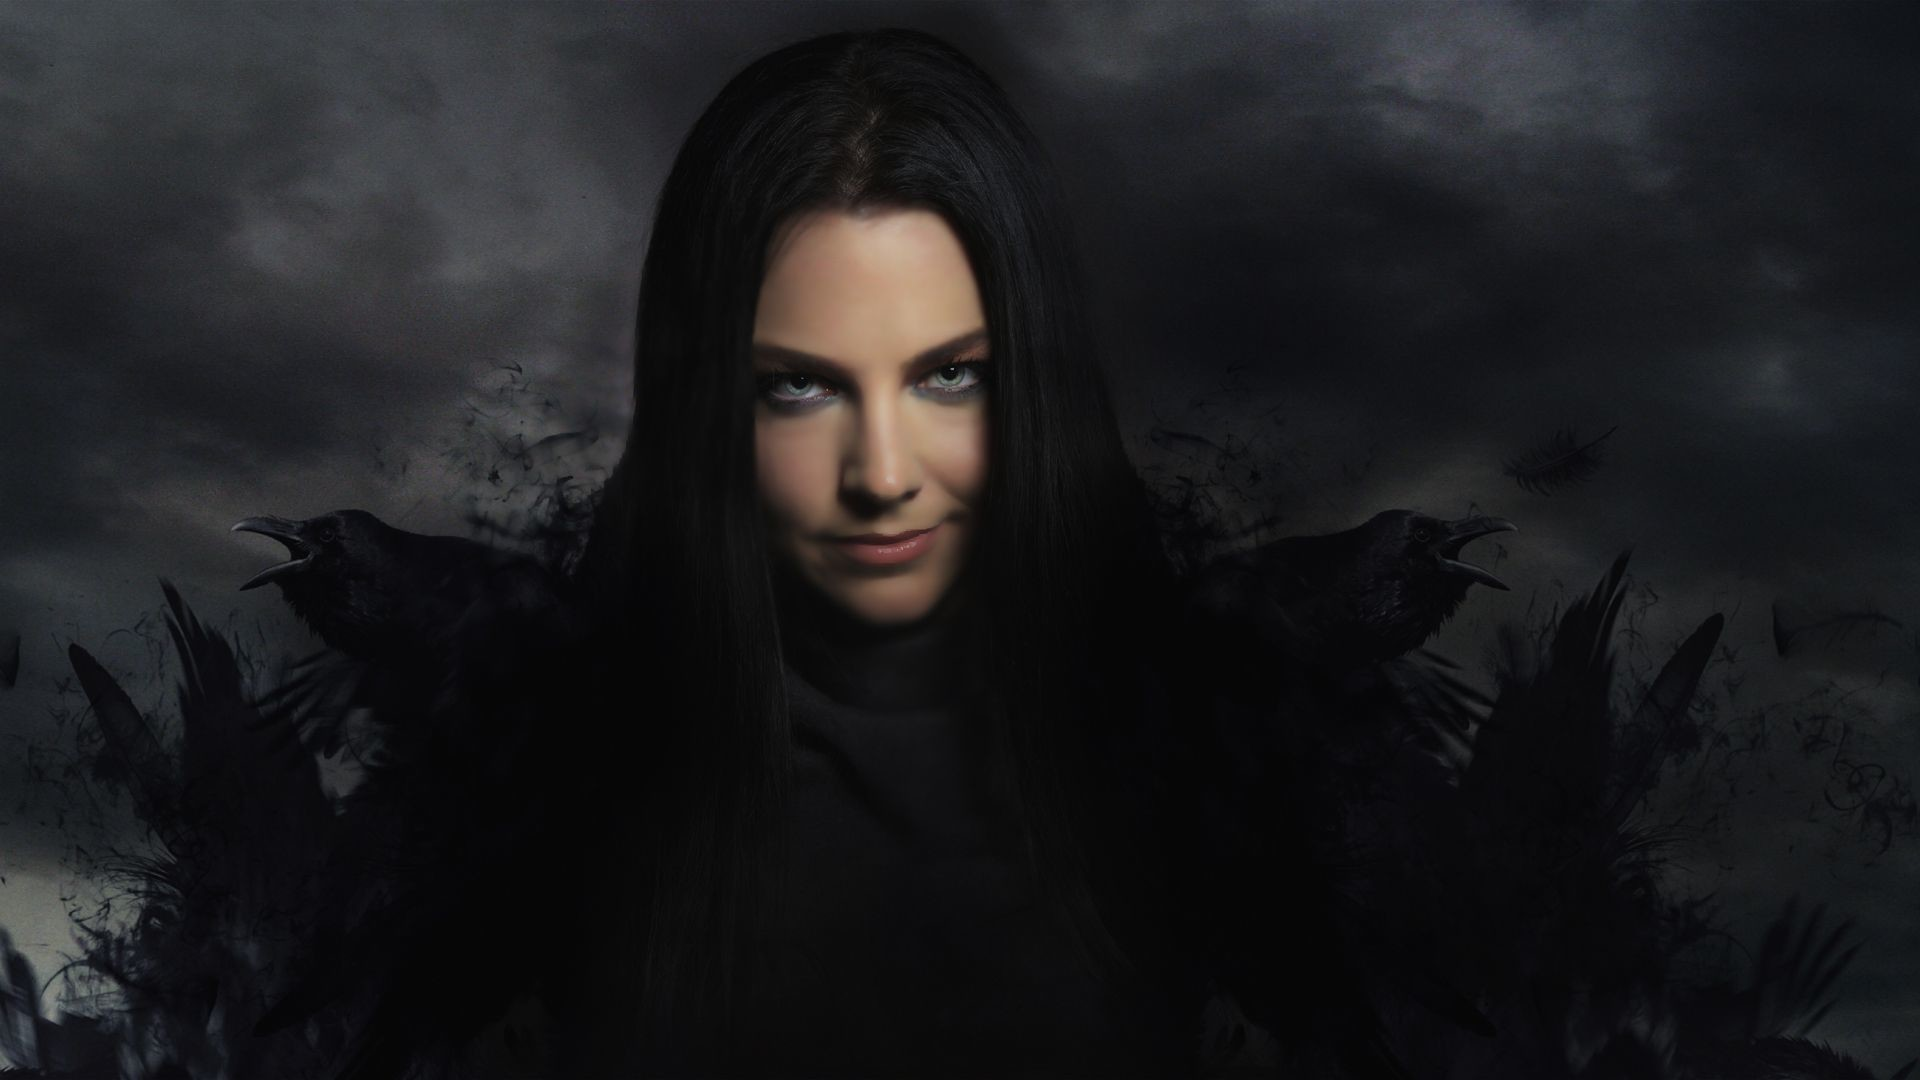 1920x1080 Amy Lee Wallpapers Amy Lee Wallpapers hd